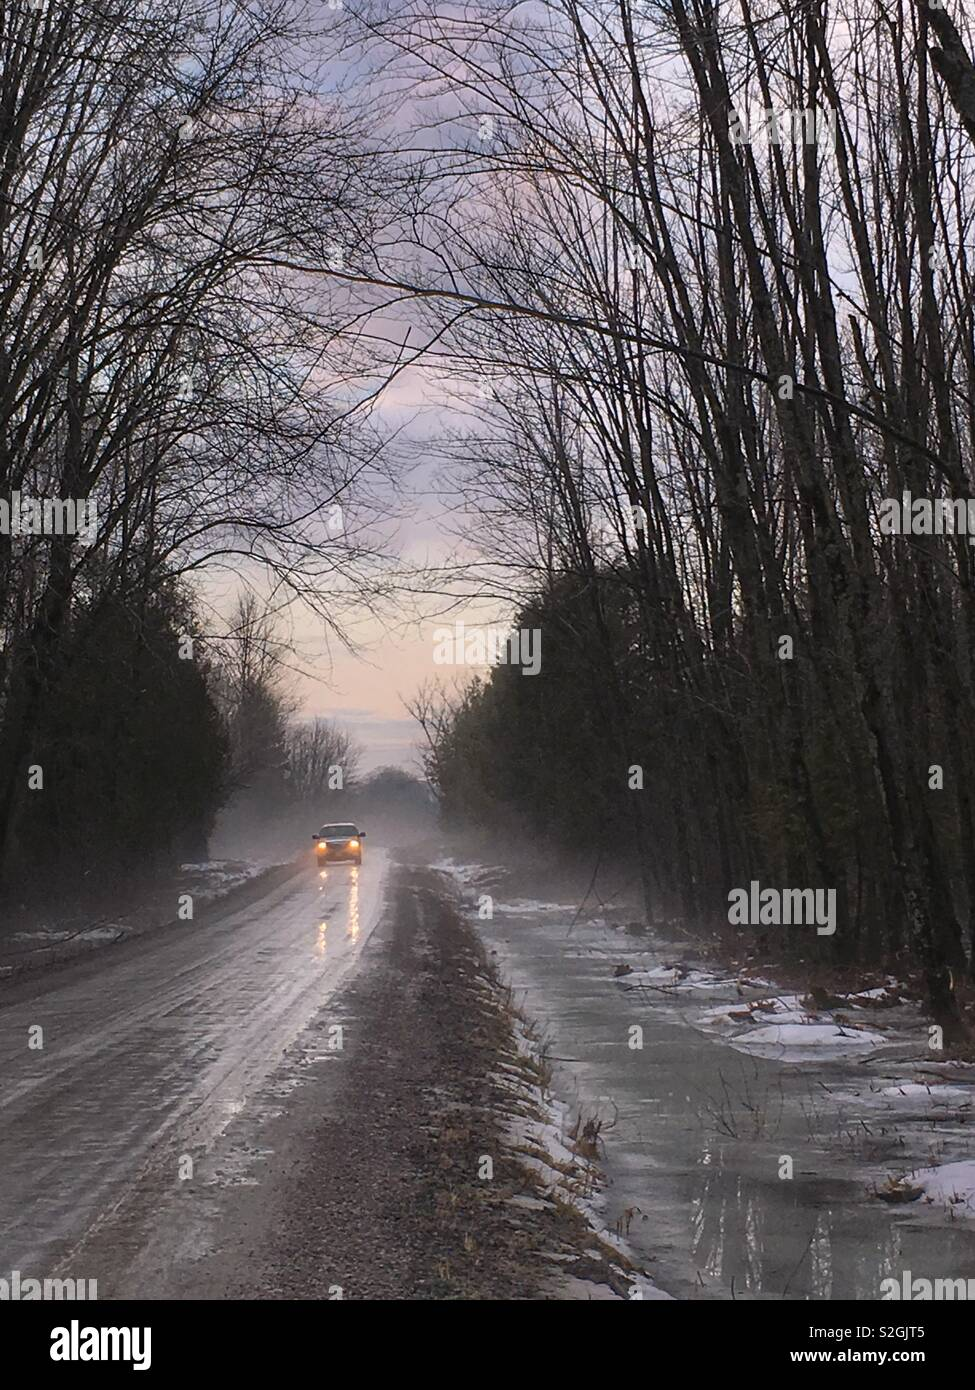 Moody uneasy shot, pick up truck with lights on, coming thru the cold winter mist down a long water covered rural road, with the roadside ditch iced over. - Stock Image